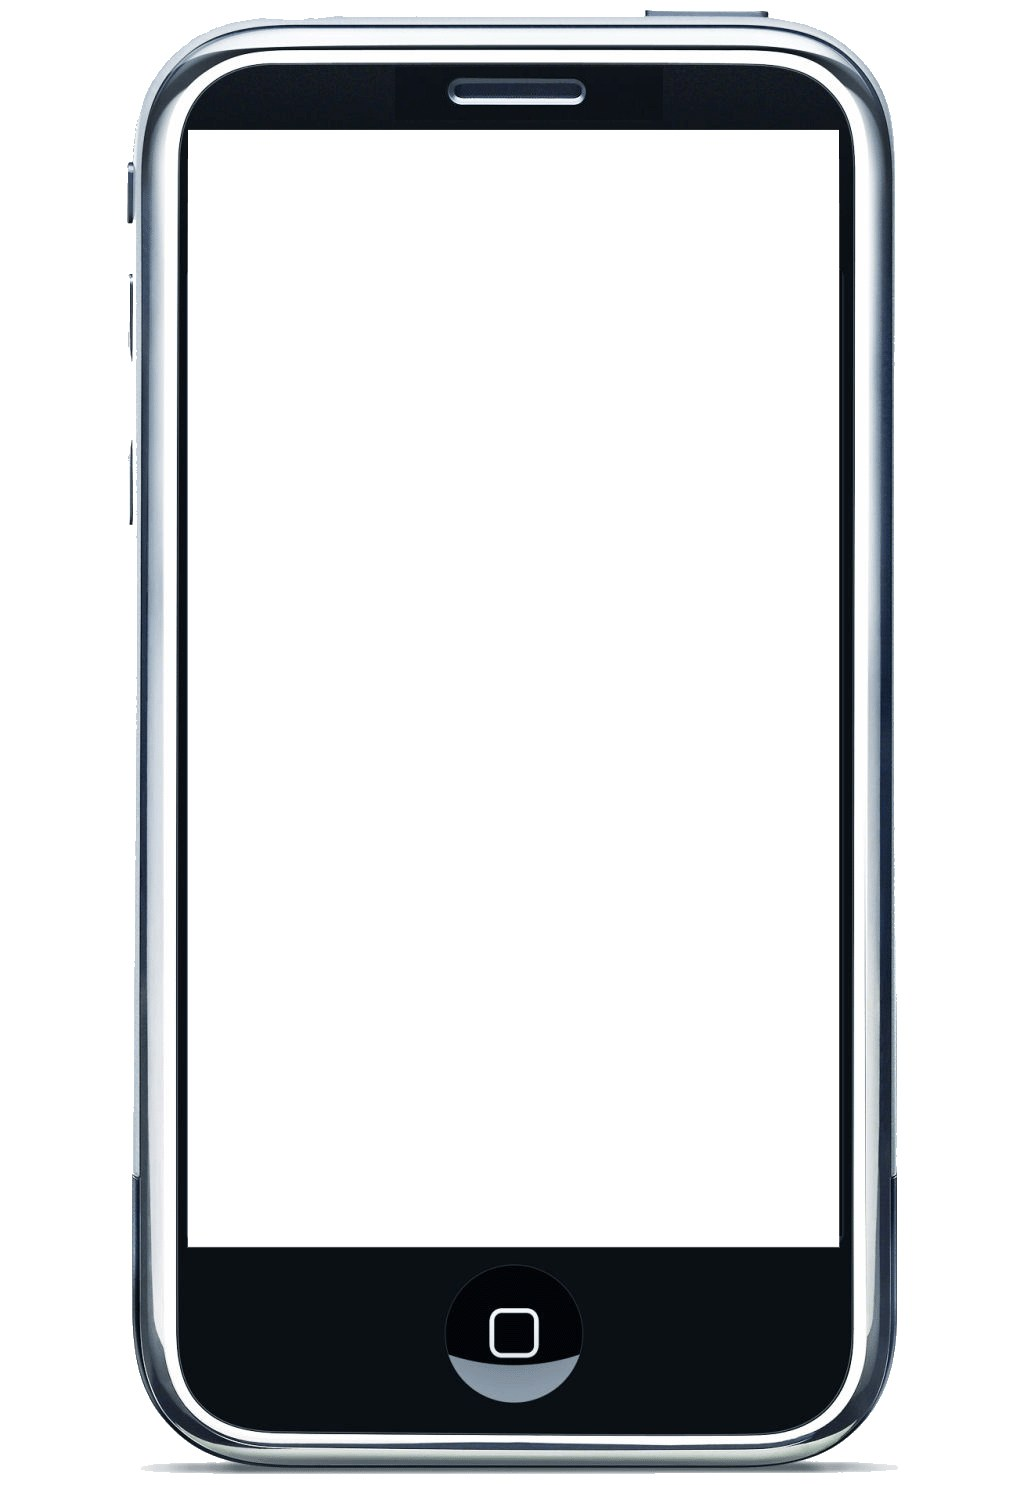 Iphone cell phone clipart 1 » Clipart Portal.